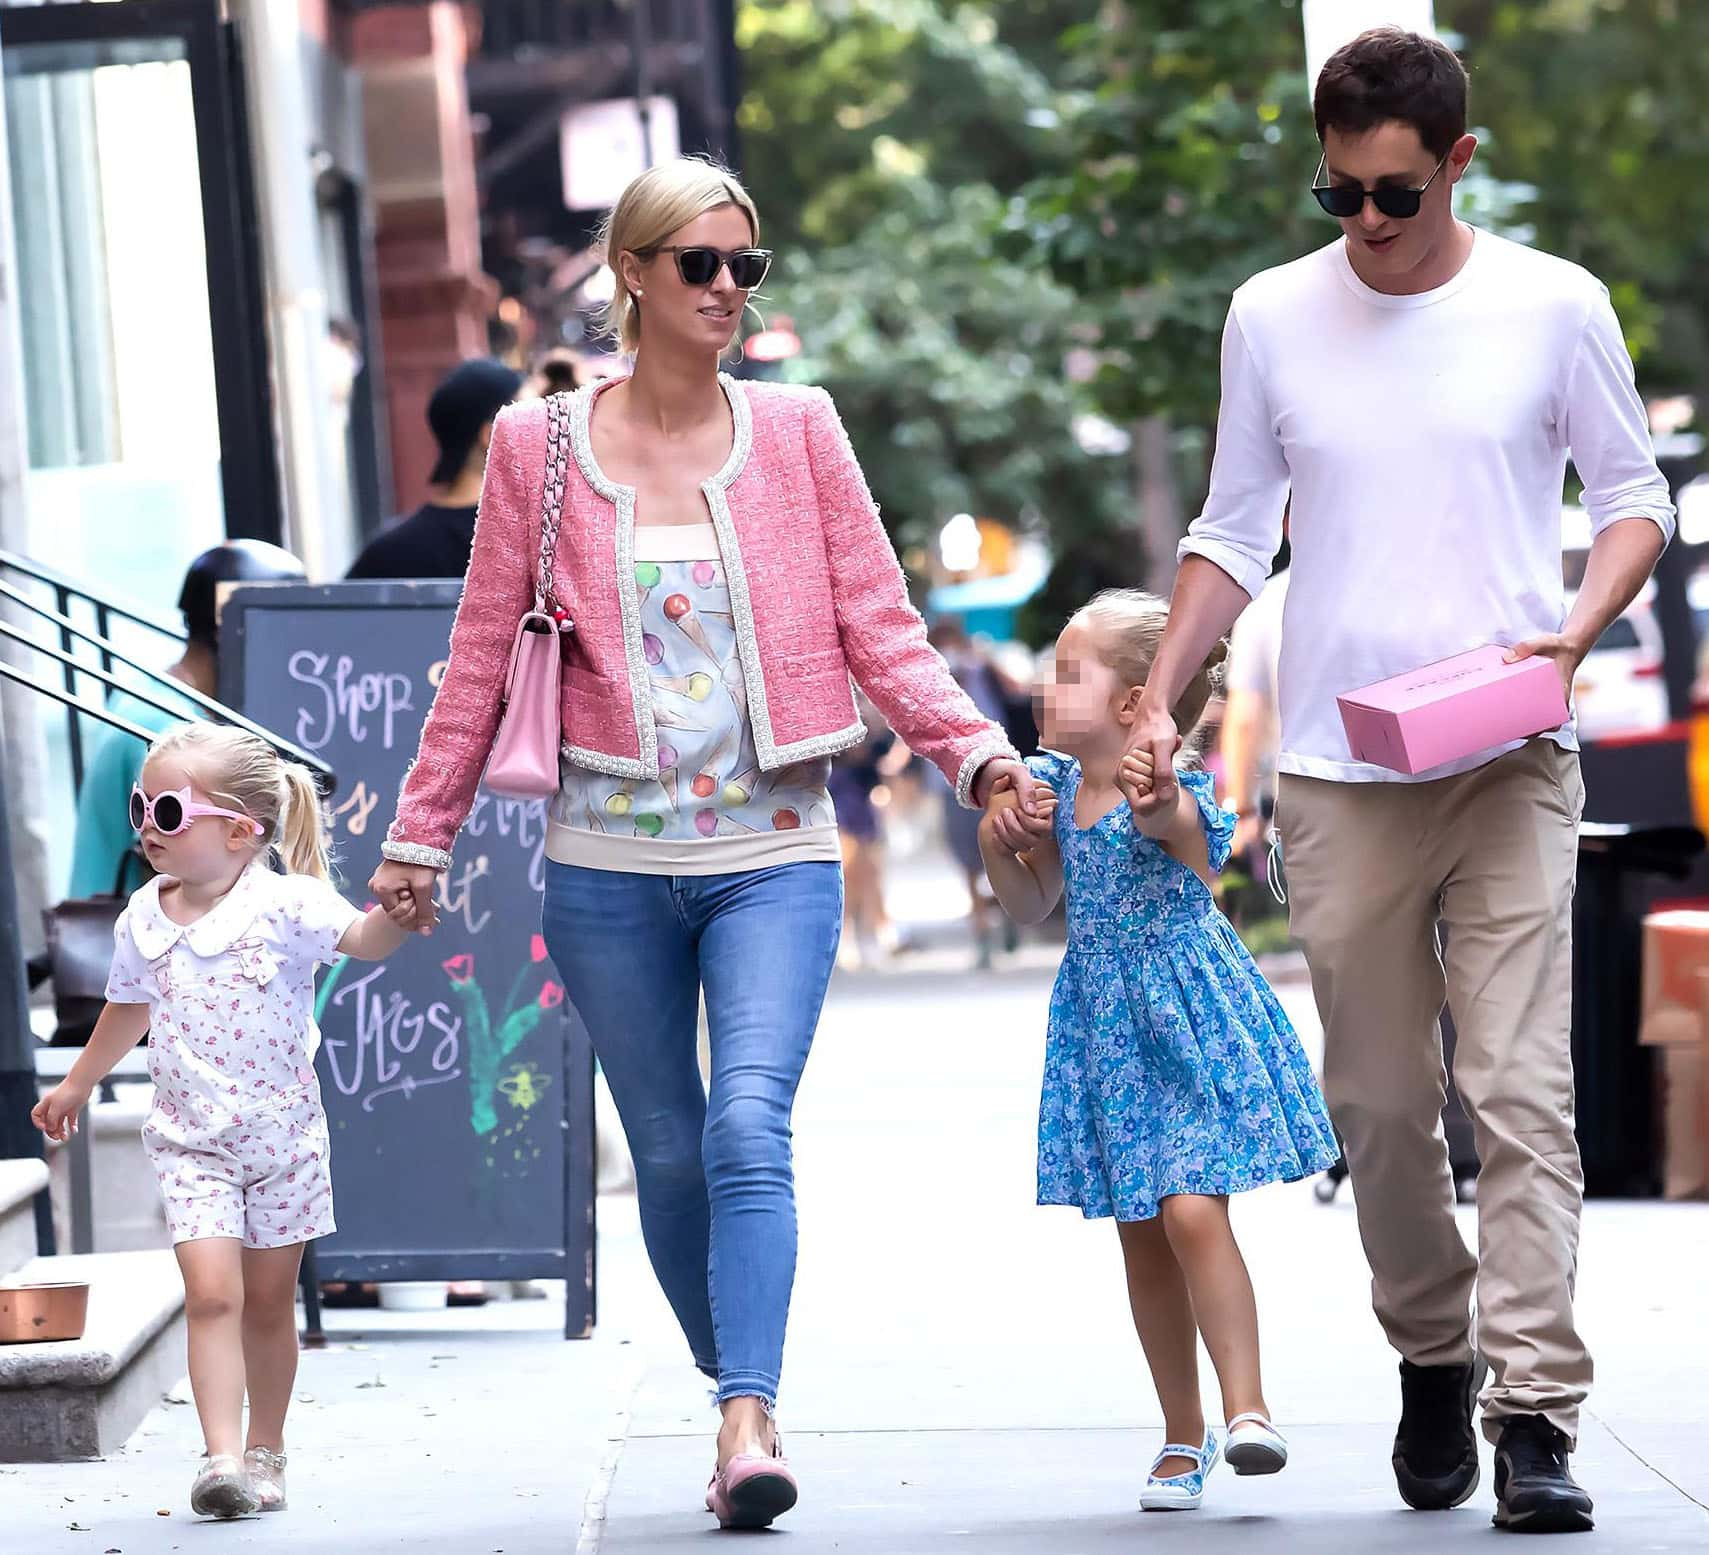 Nicky Hilton and James Rothschild head to Little Cupcakes Bakeshop with their kids Lily-Grace and Teddy